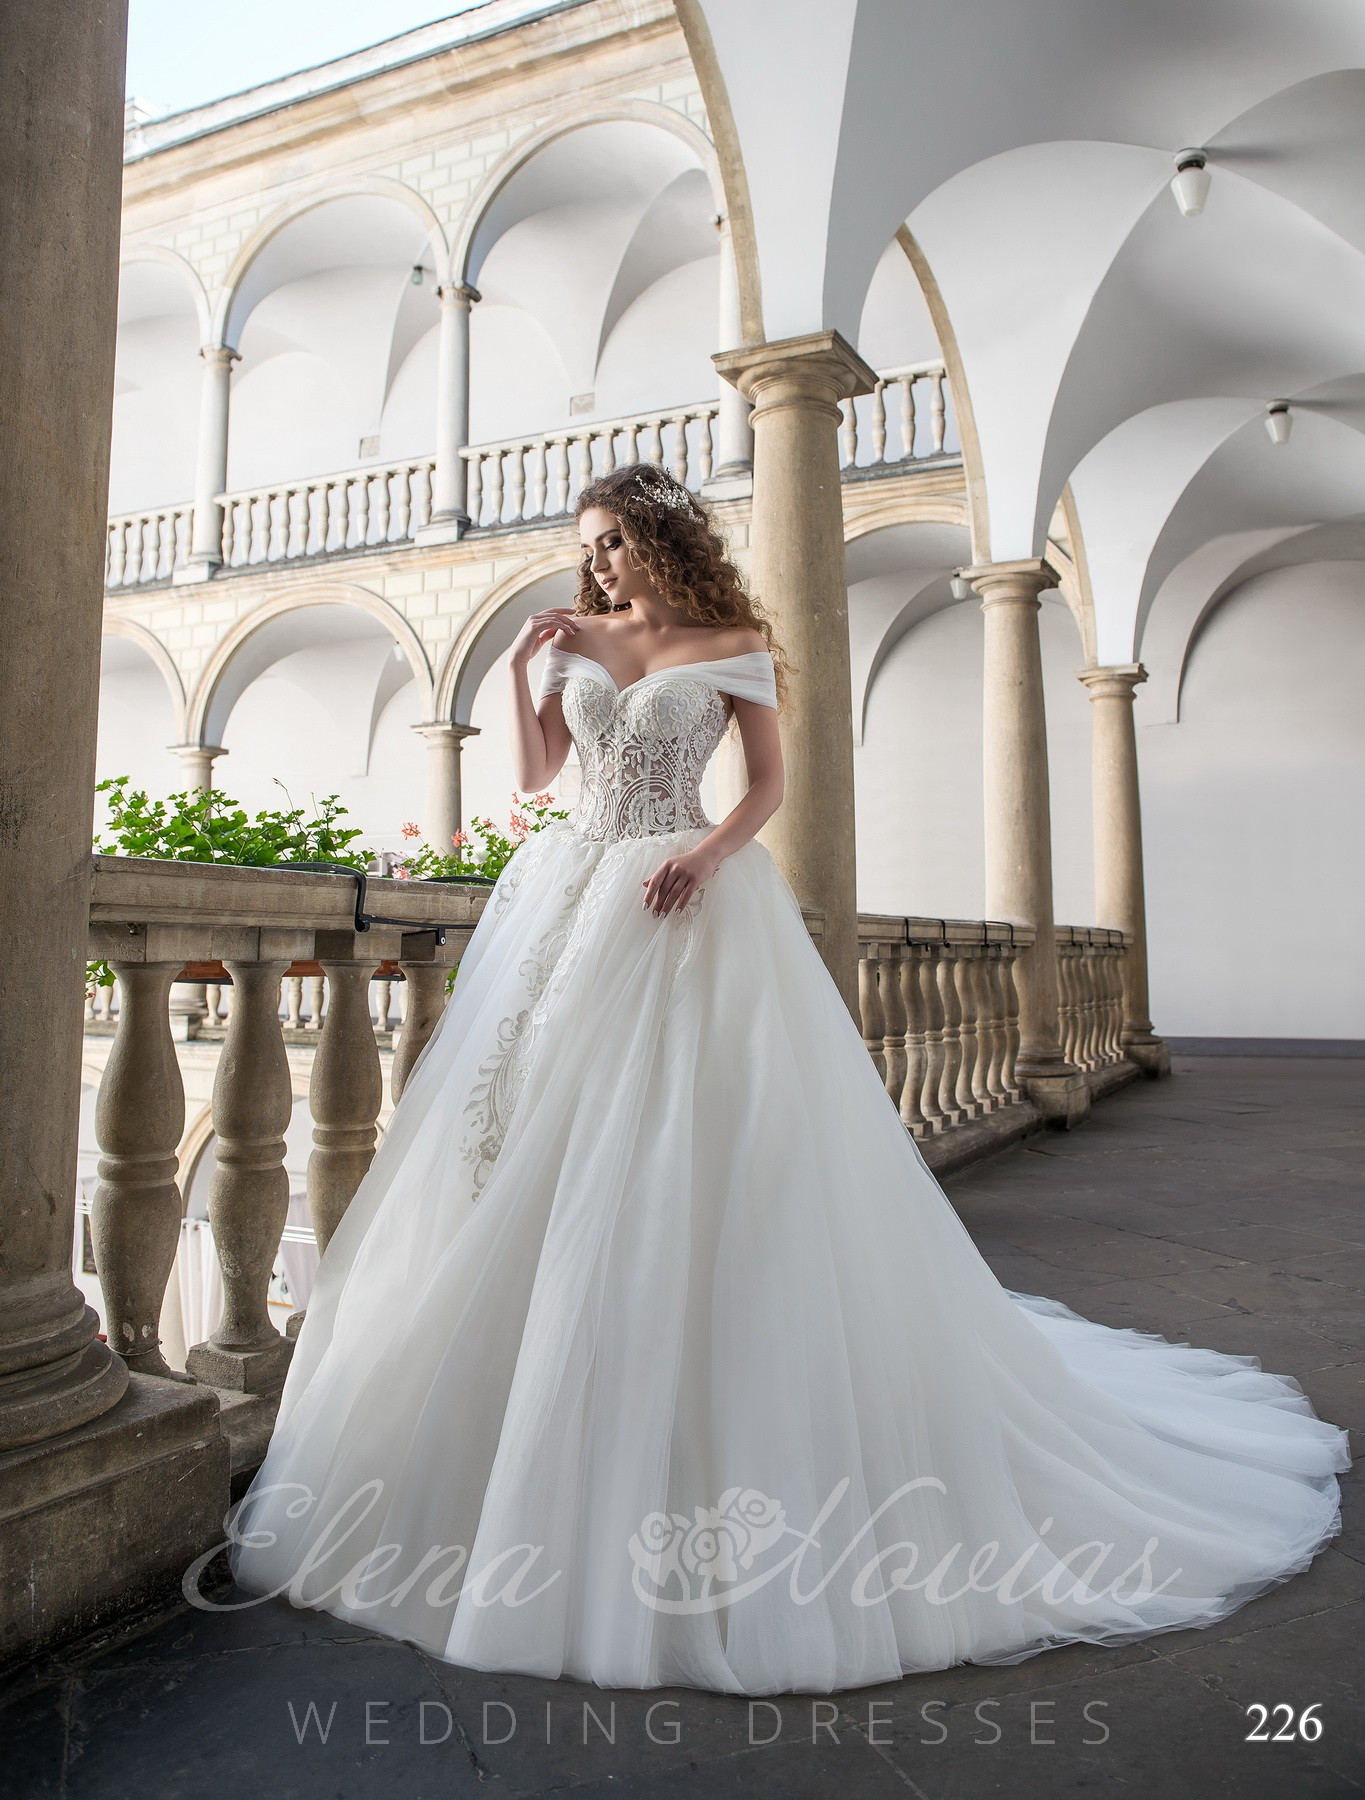 Wedding dress with beads model 226